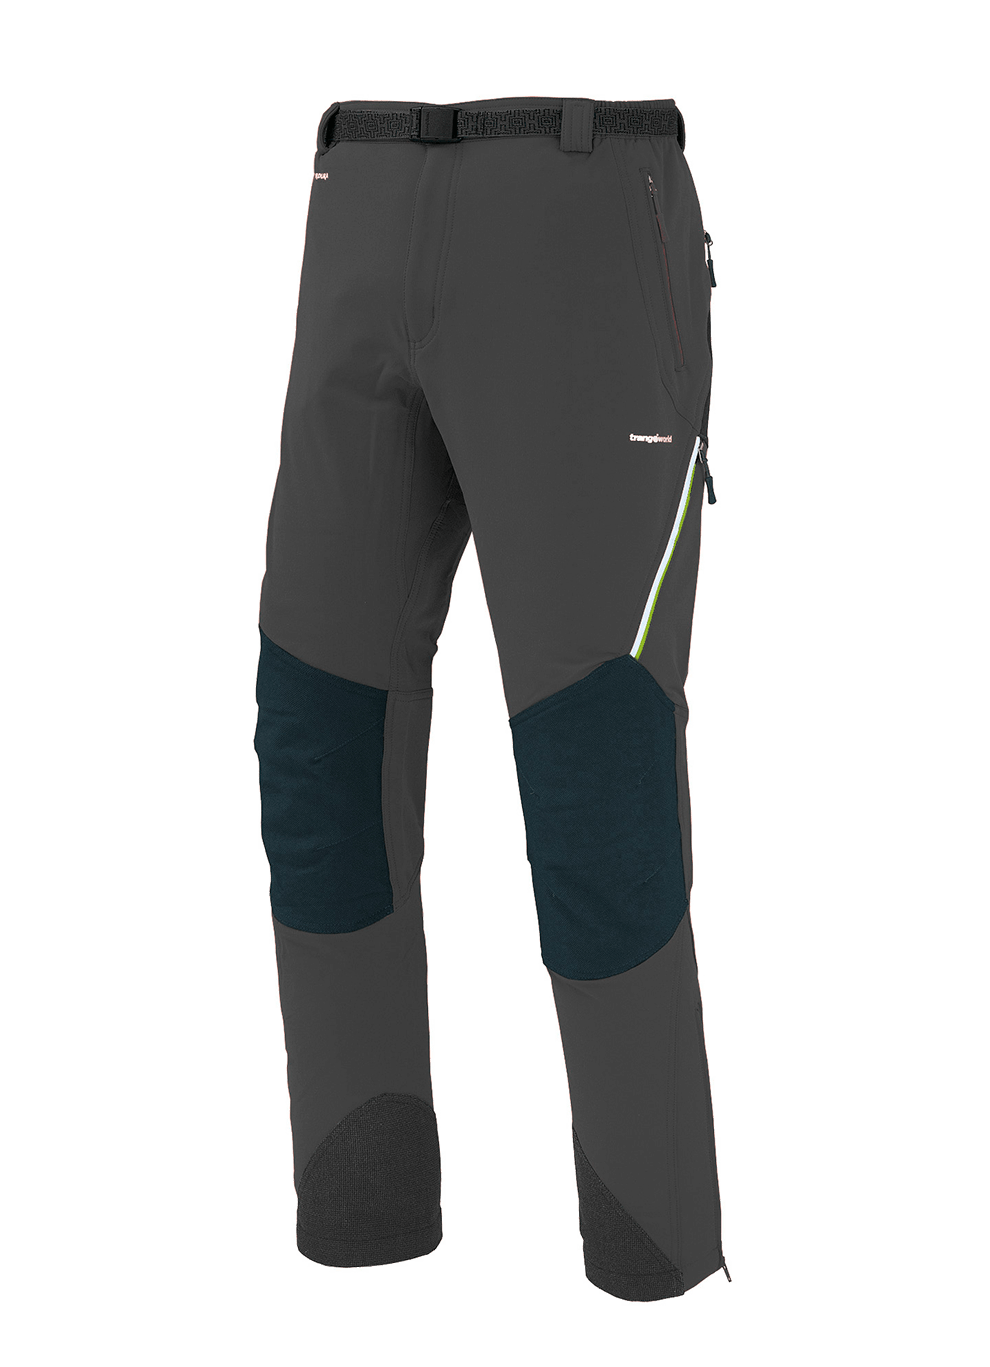 Trangoworld Prote Extreme DS Pants 661 Grey 1